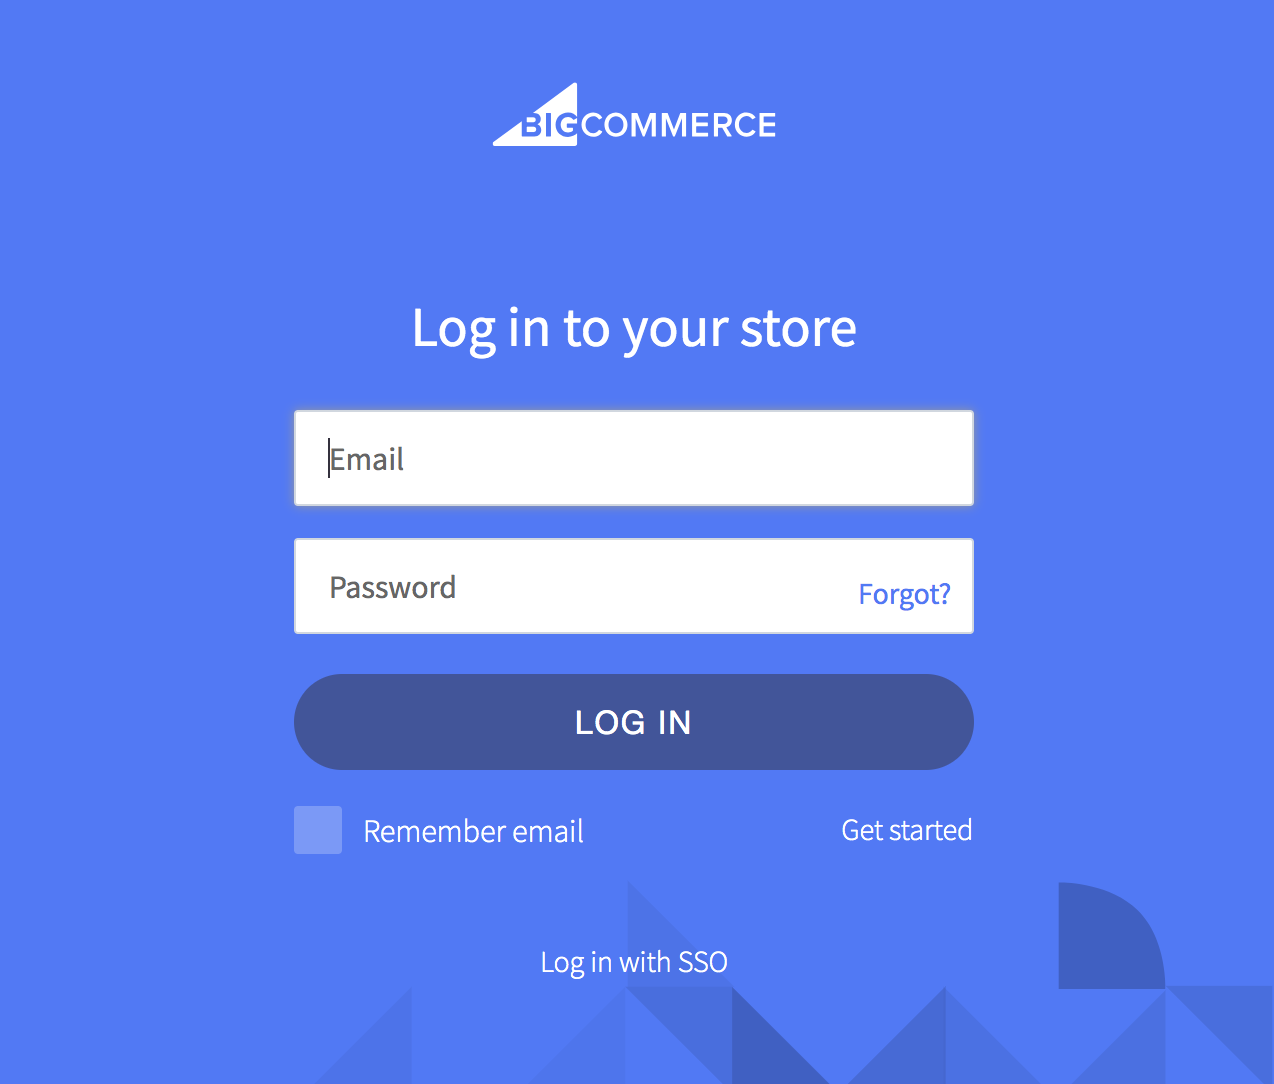 Log into the BigCommerce Store